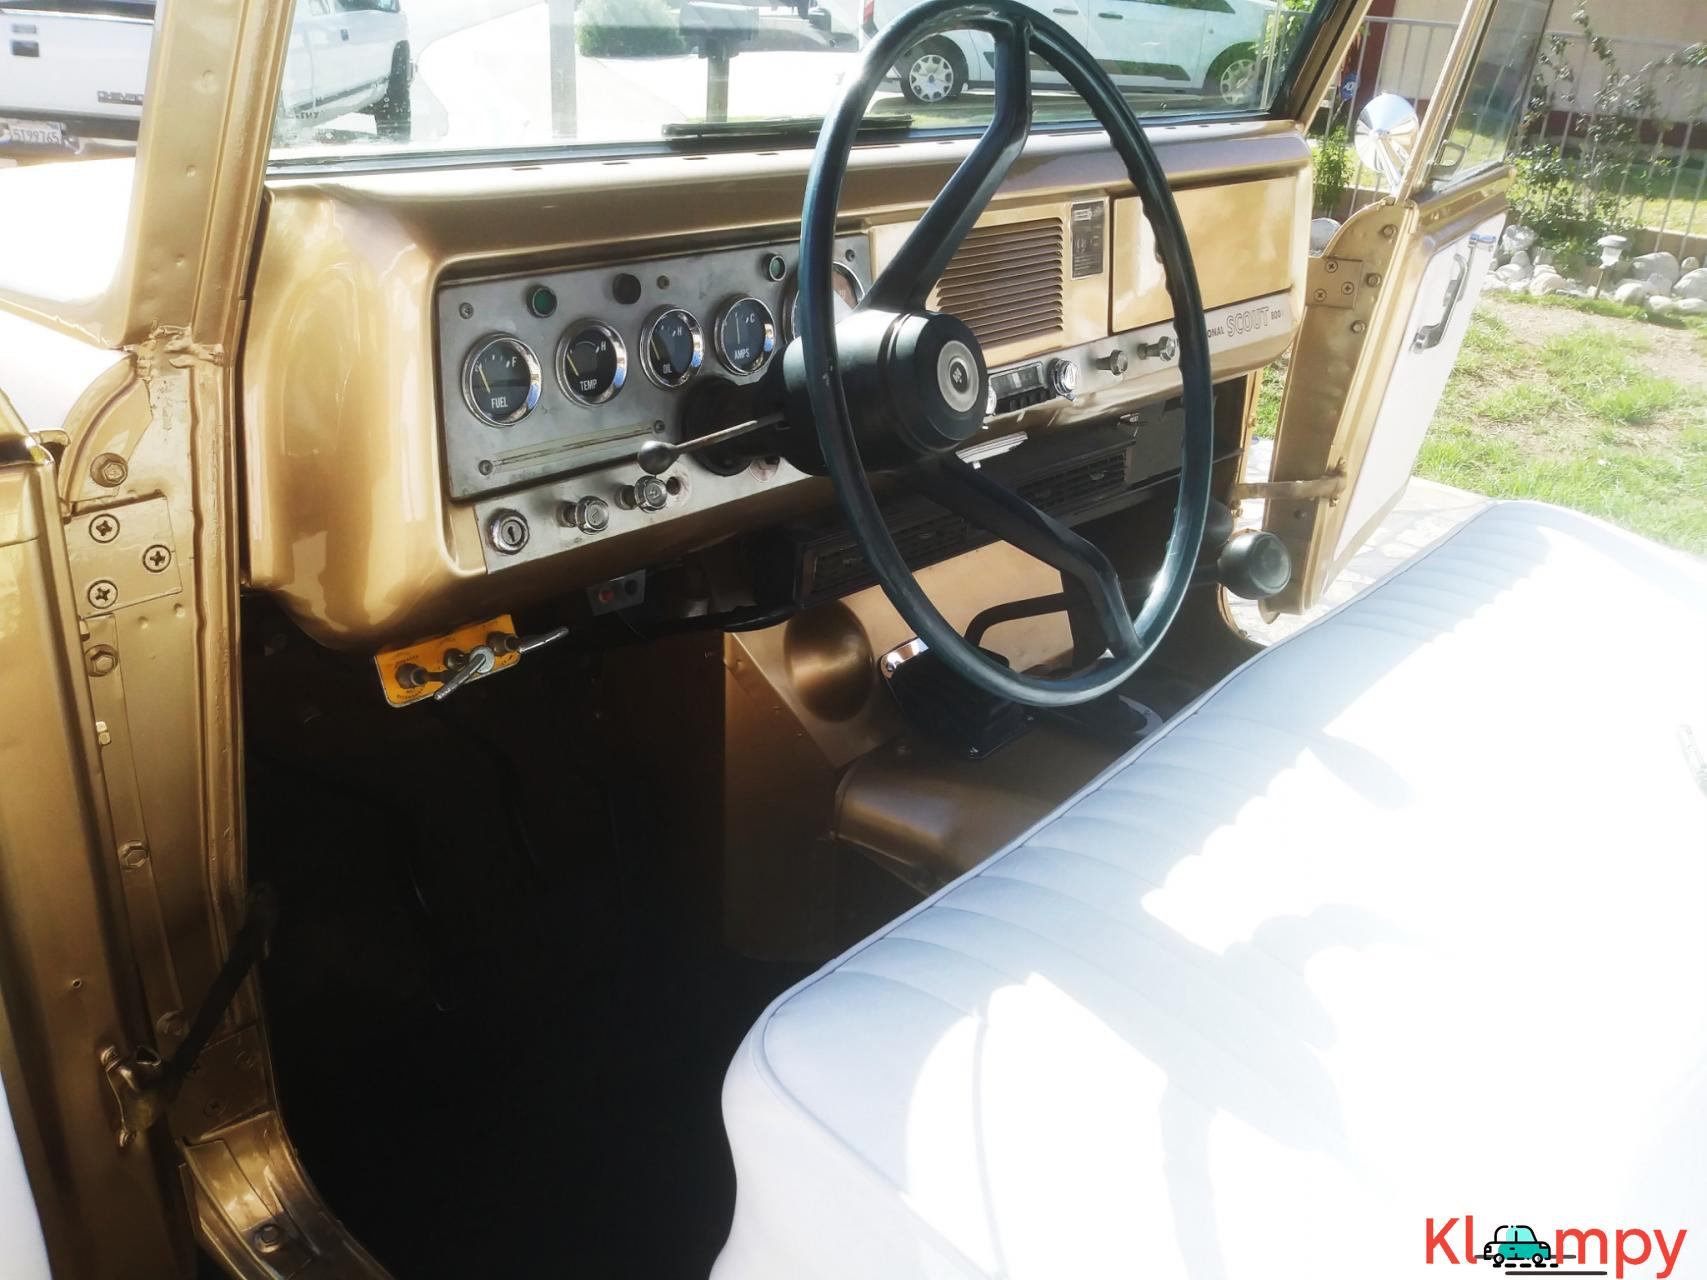 1971 International Harvester Scout 800B Apache Gold Poly 4x4 - 12/14